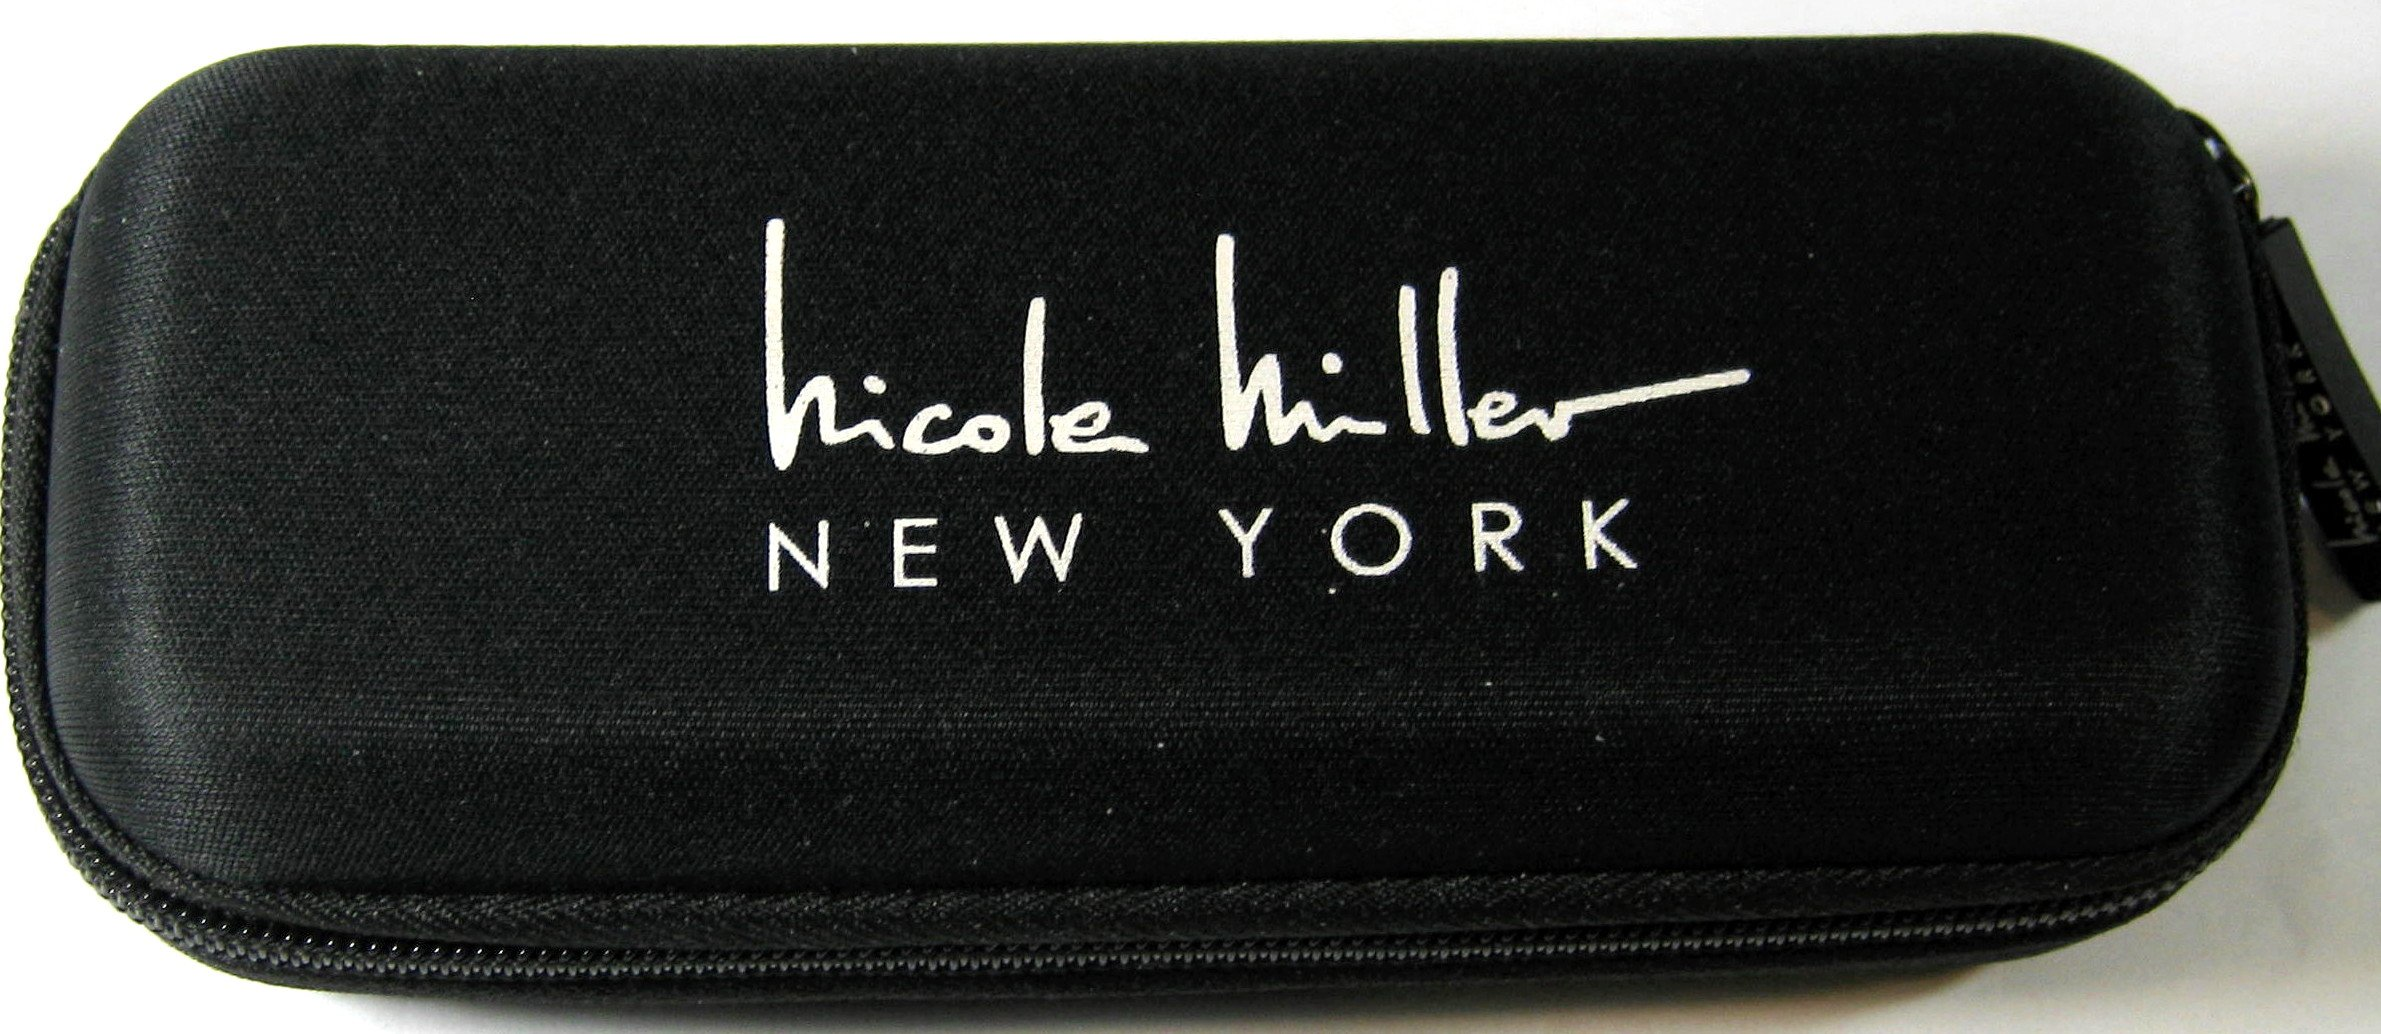 Nicole Miller 42 Inch Micro Mini Umbrella with Hard Eyeglass Carrying Case Black